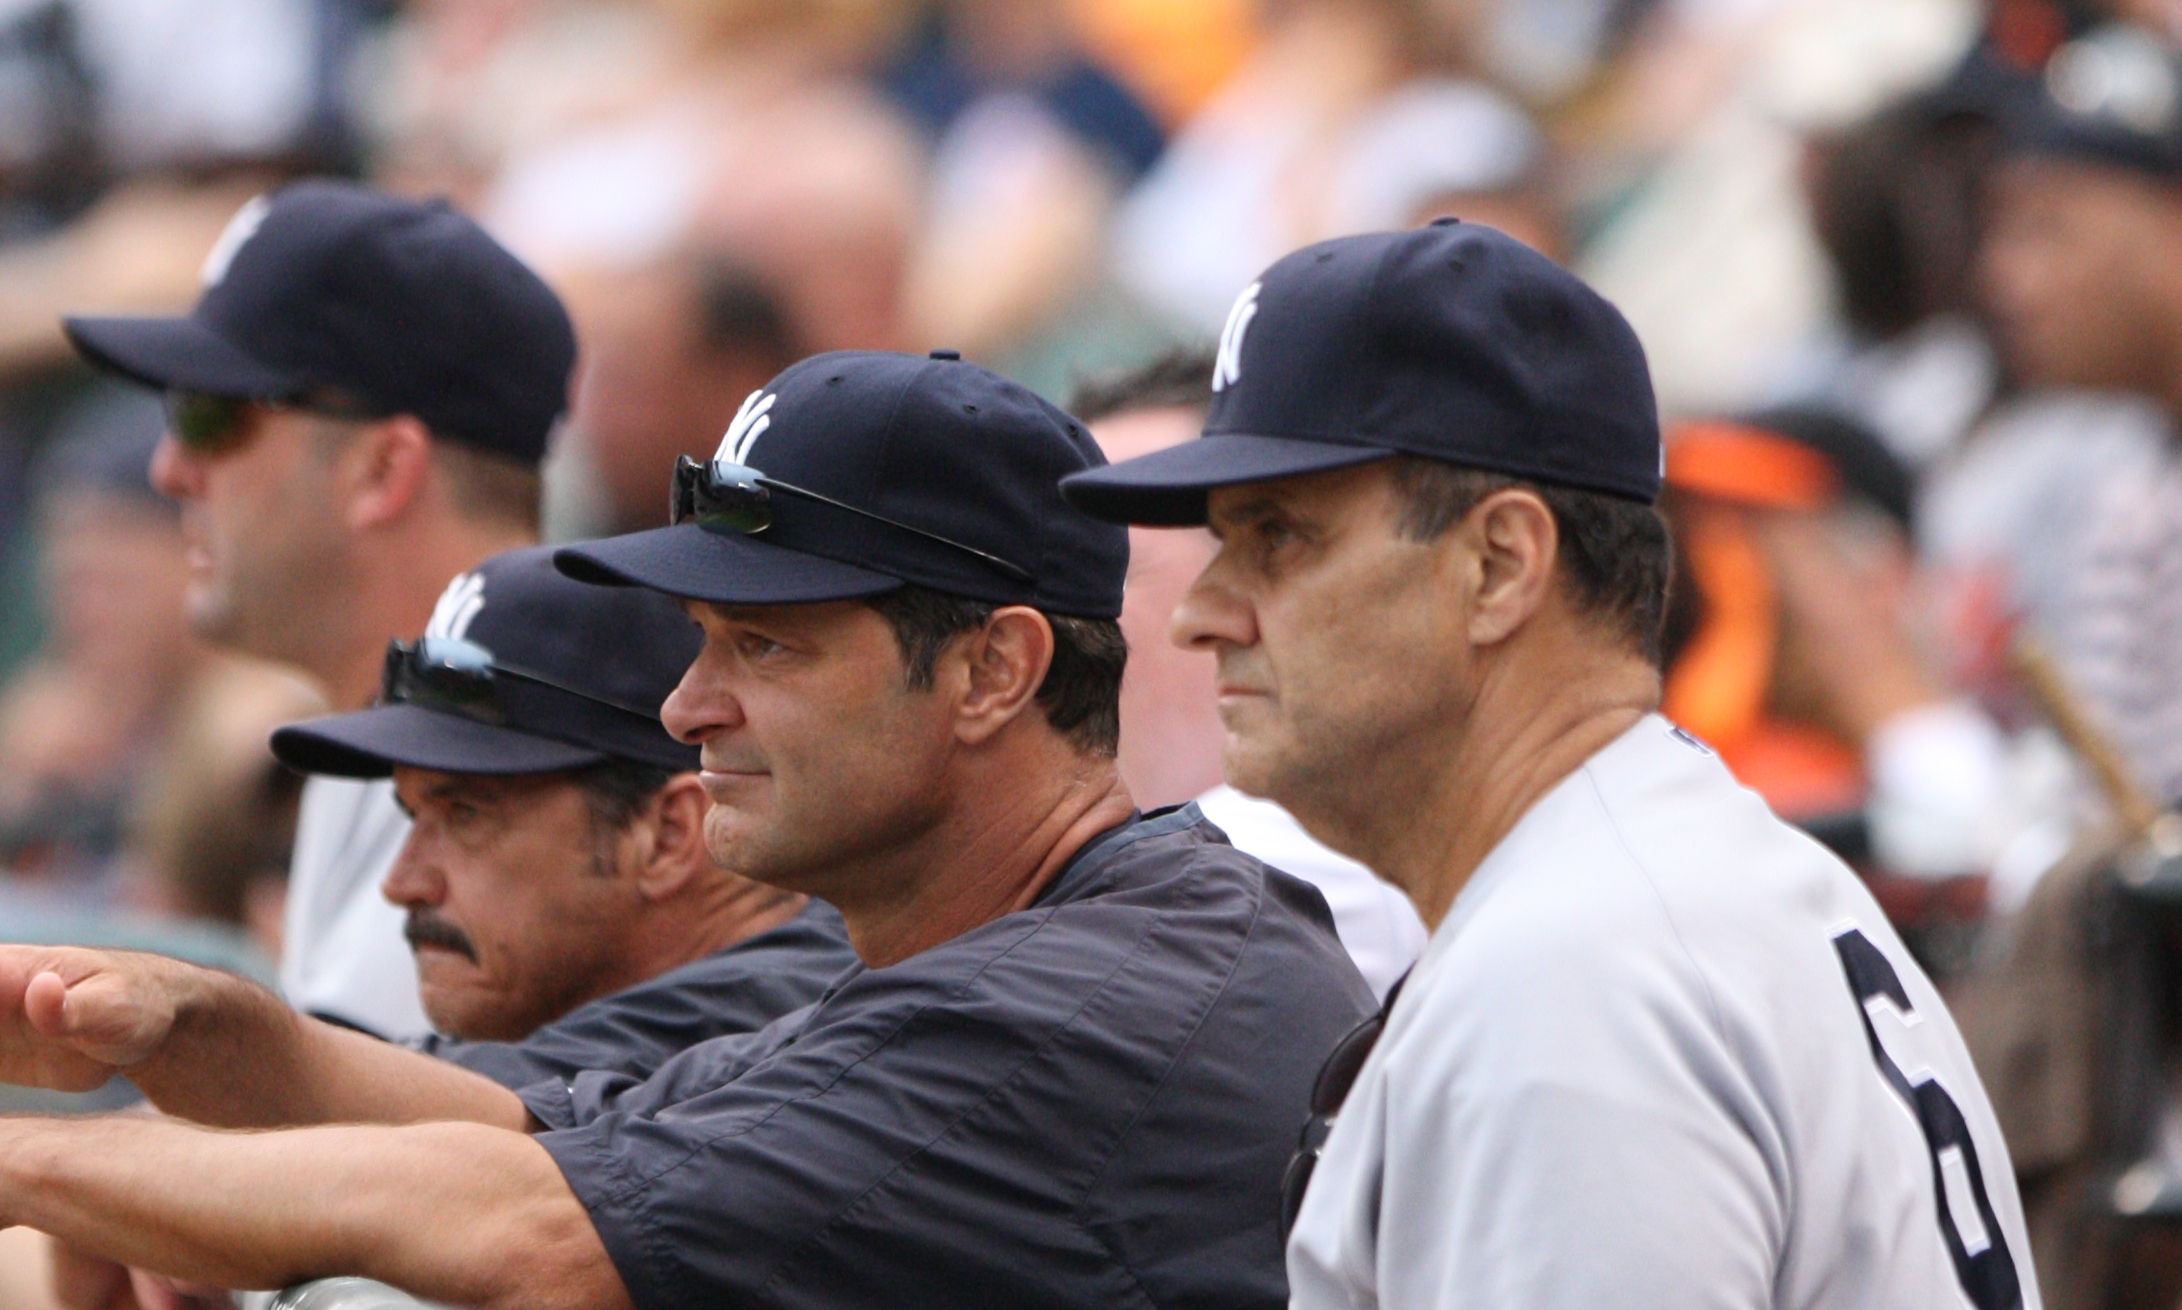 acc843aed2a List of New York Yankees coaches - Wikipedia